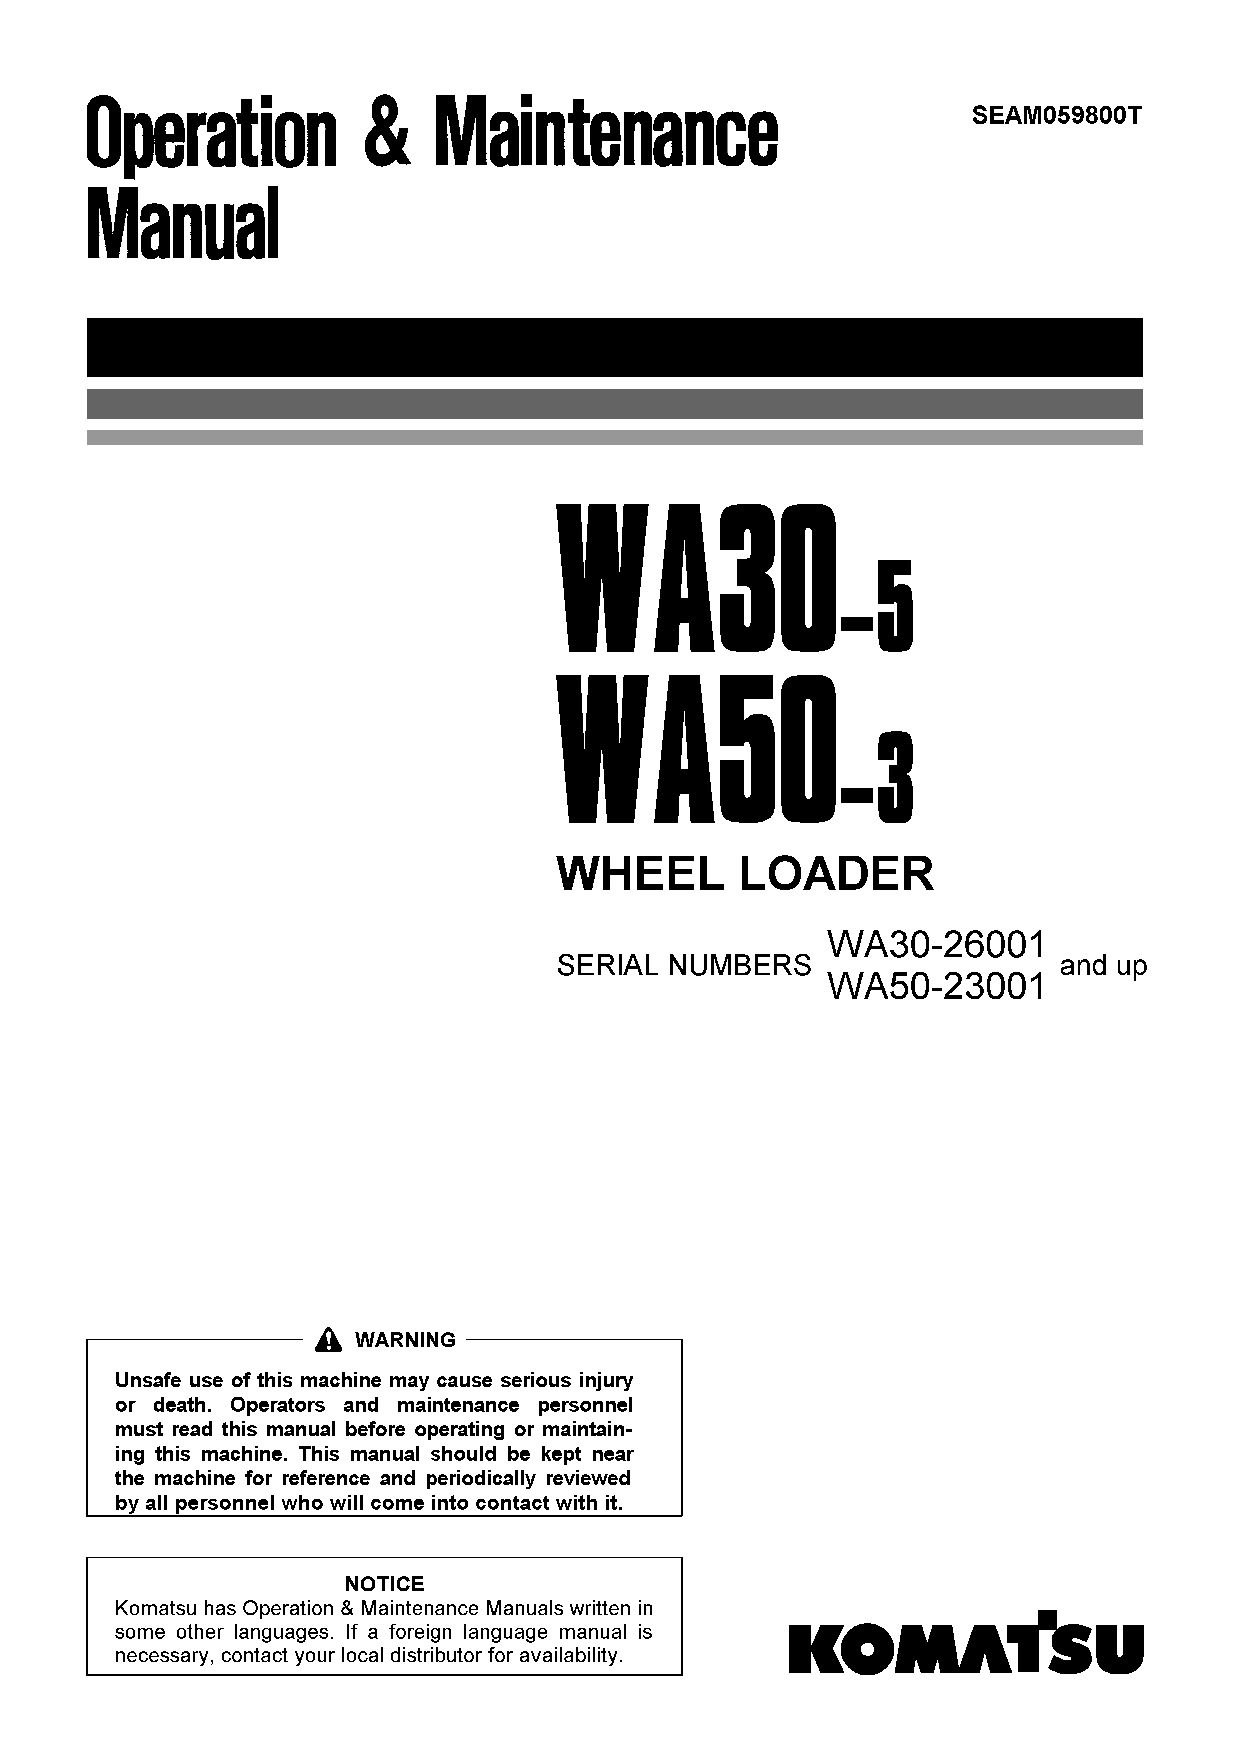 Komatsu WA50-3 Operation and Maintenance Manual